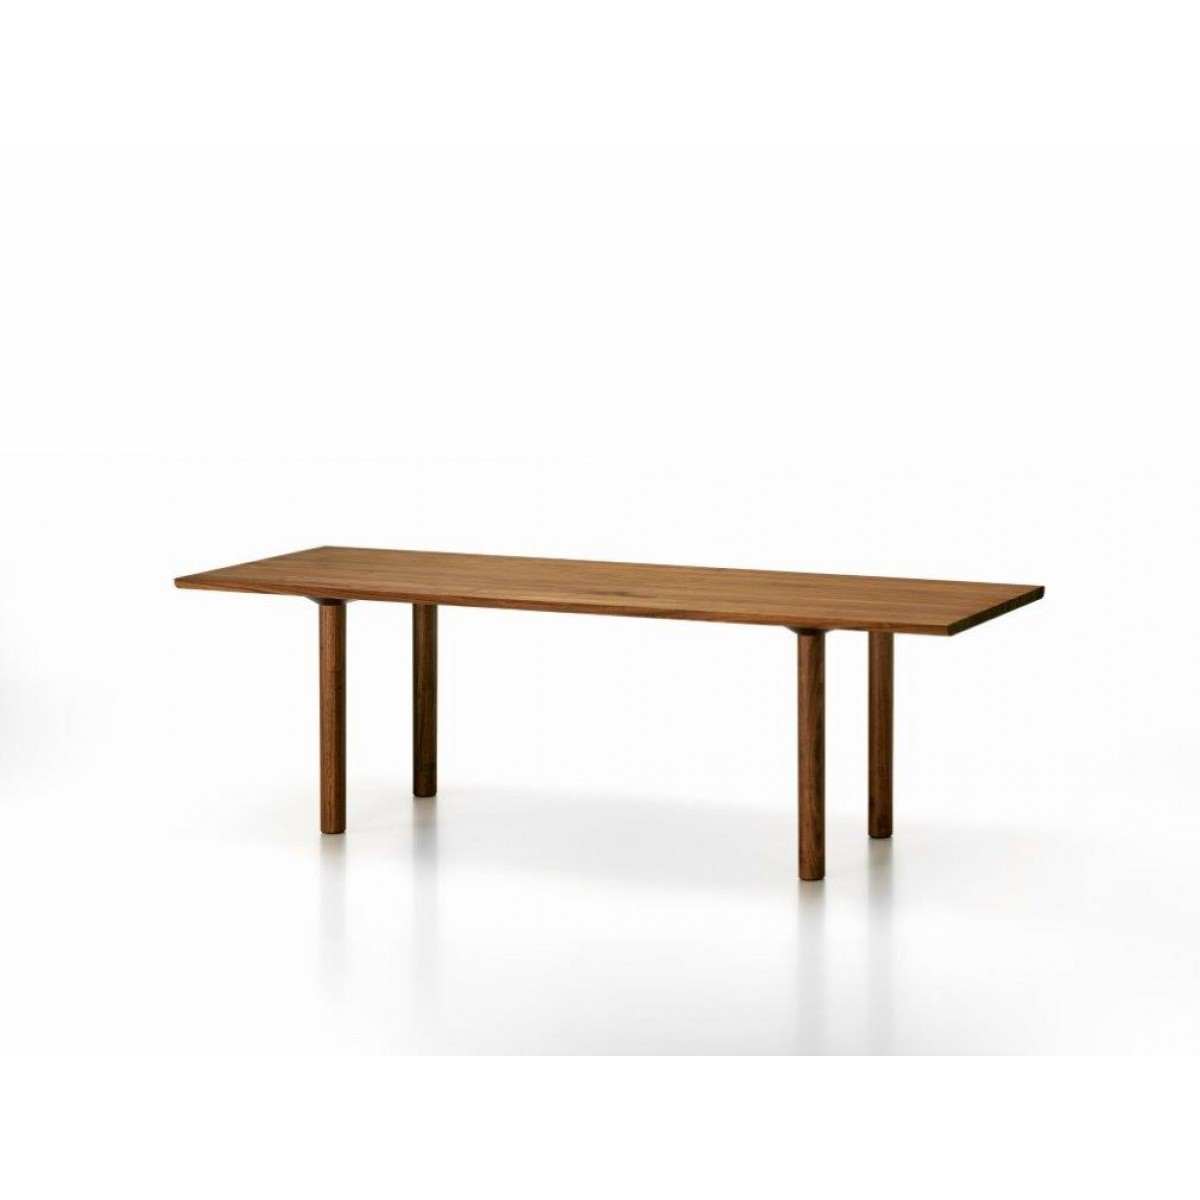 Vitra Table Vitra Wood Table Tisch Von Goodform Ch